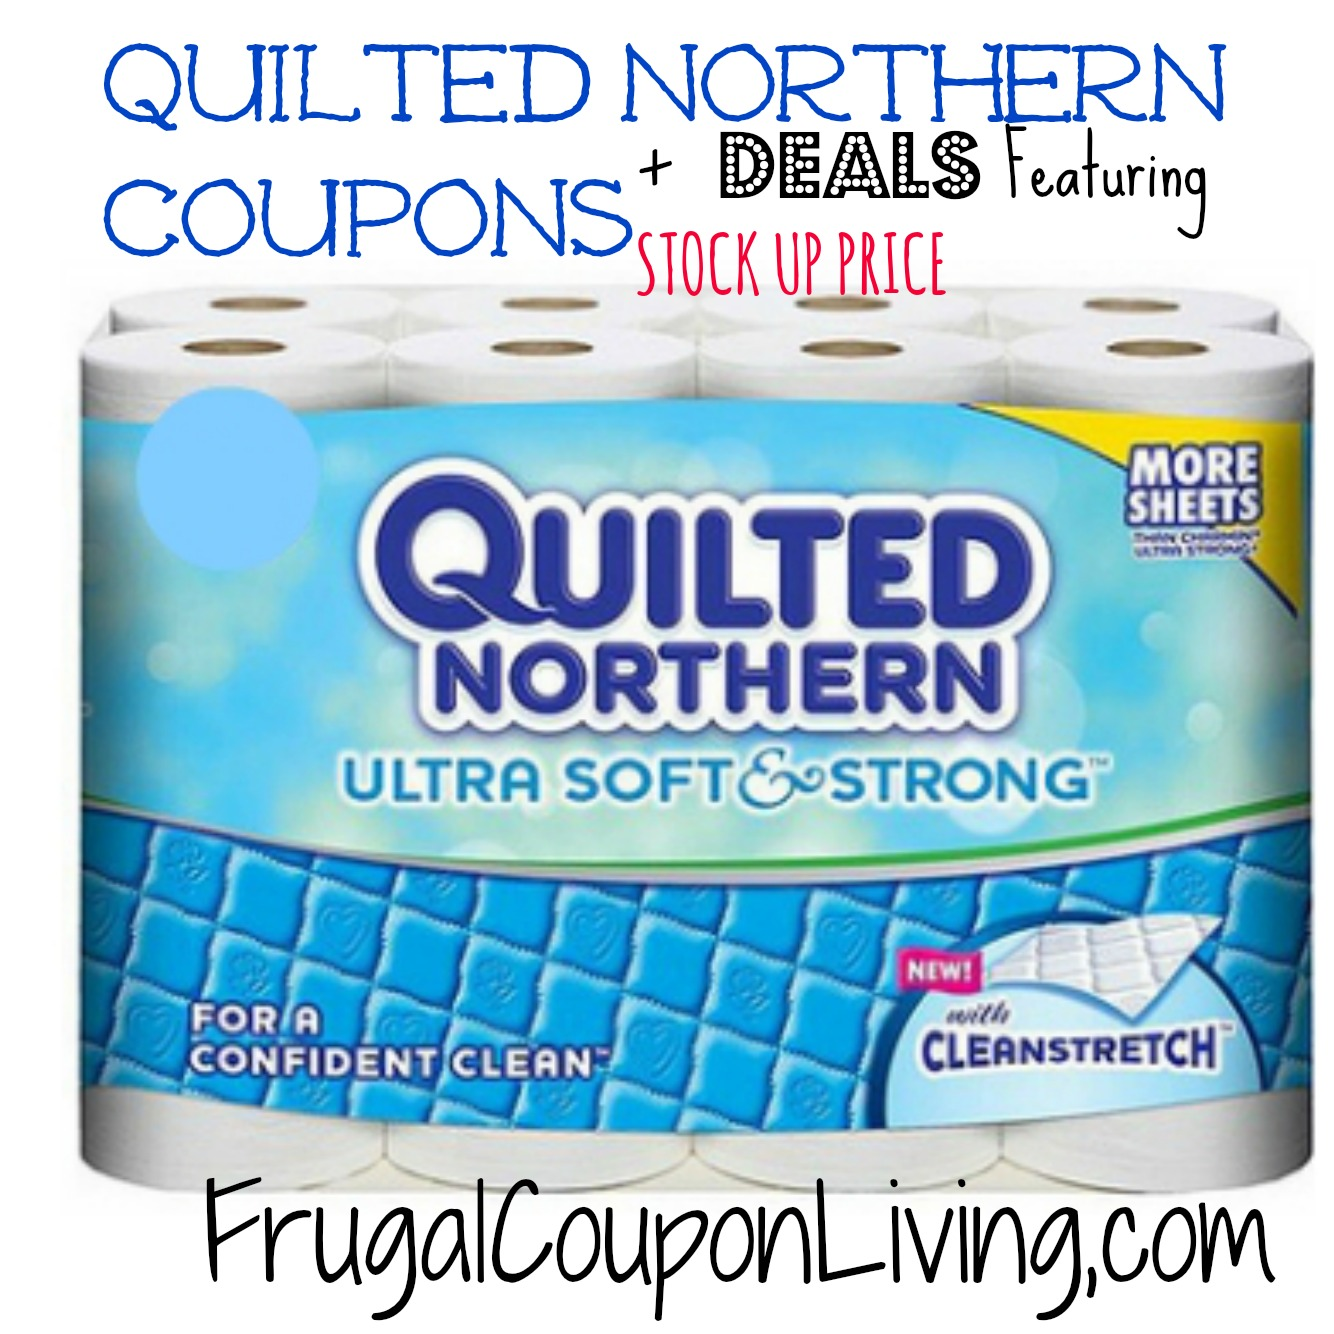 quilted northern coupons.jpg